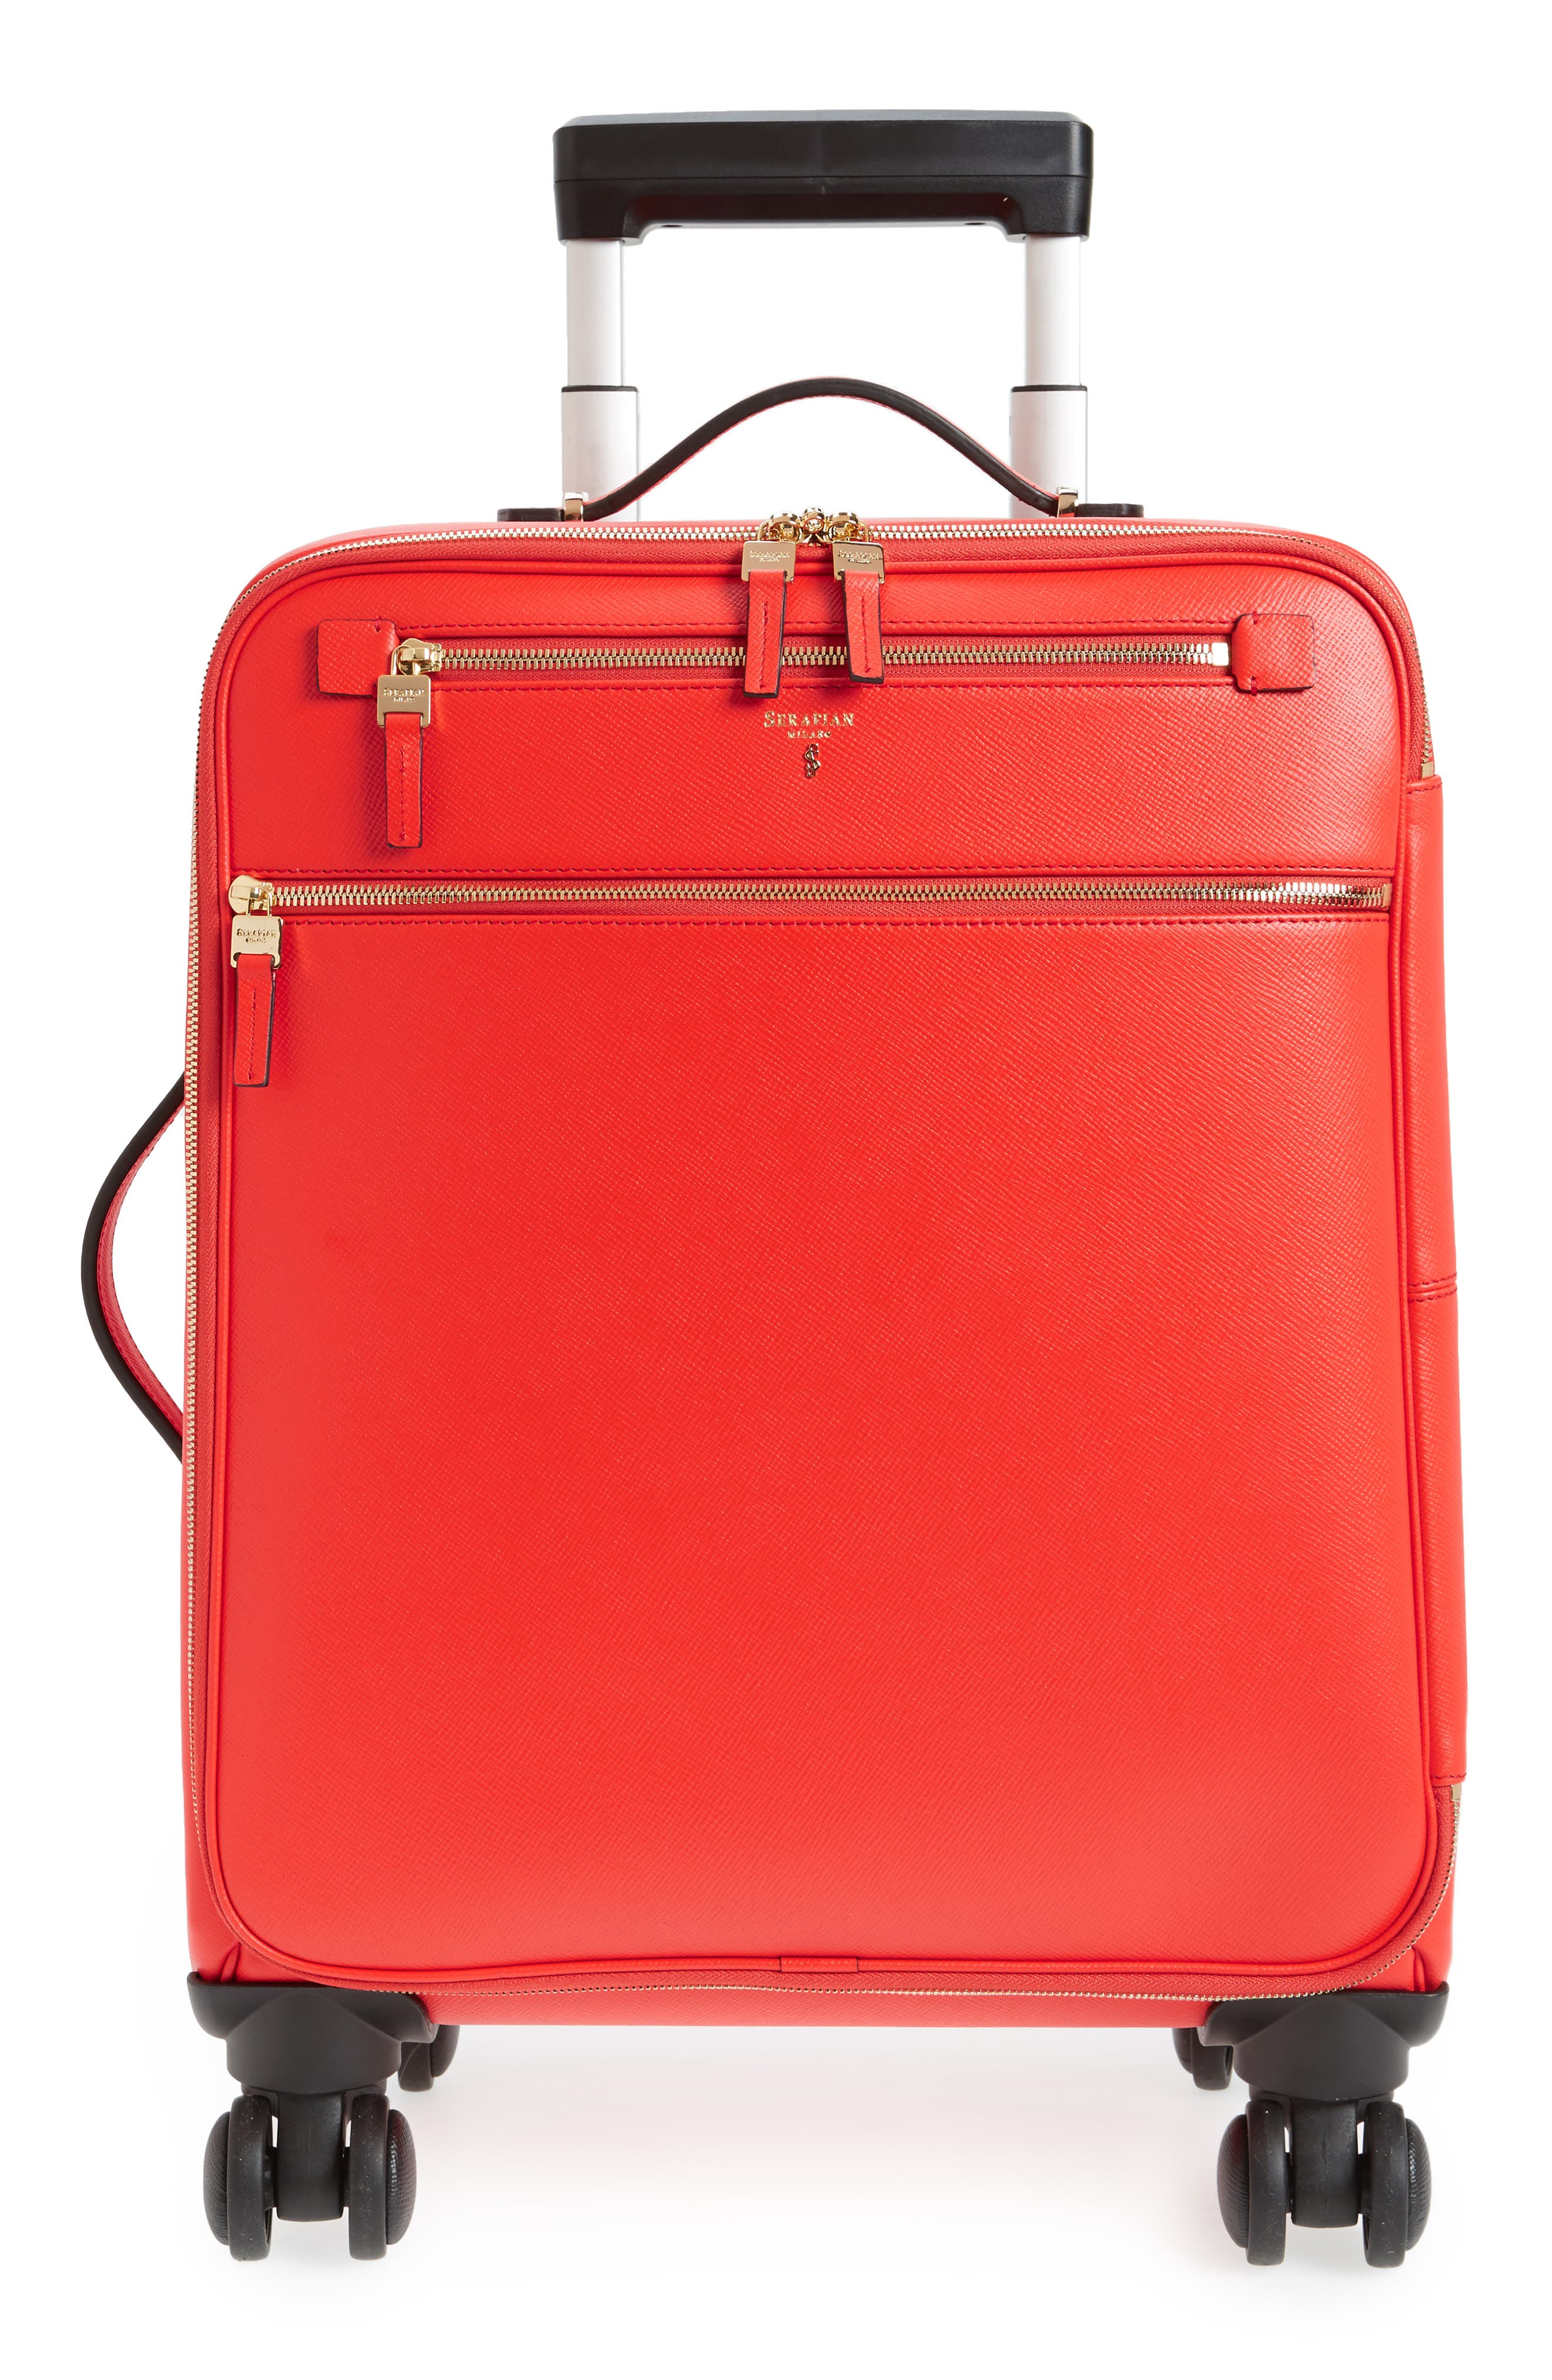 Trolley Spinner Wheeled Carry-On Suitcase,                             Main thumbnail 4, color,